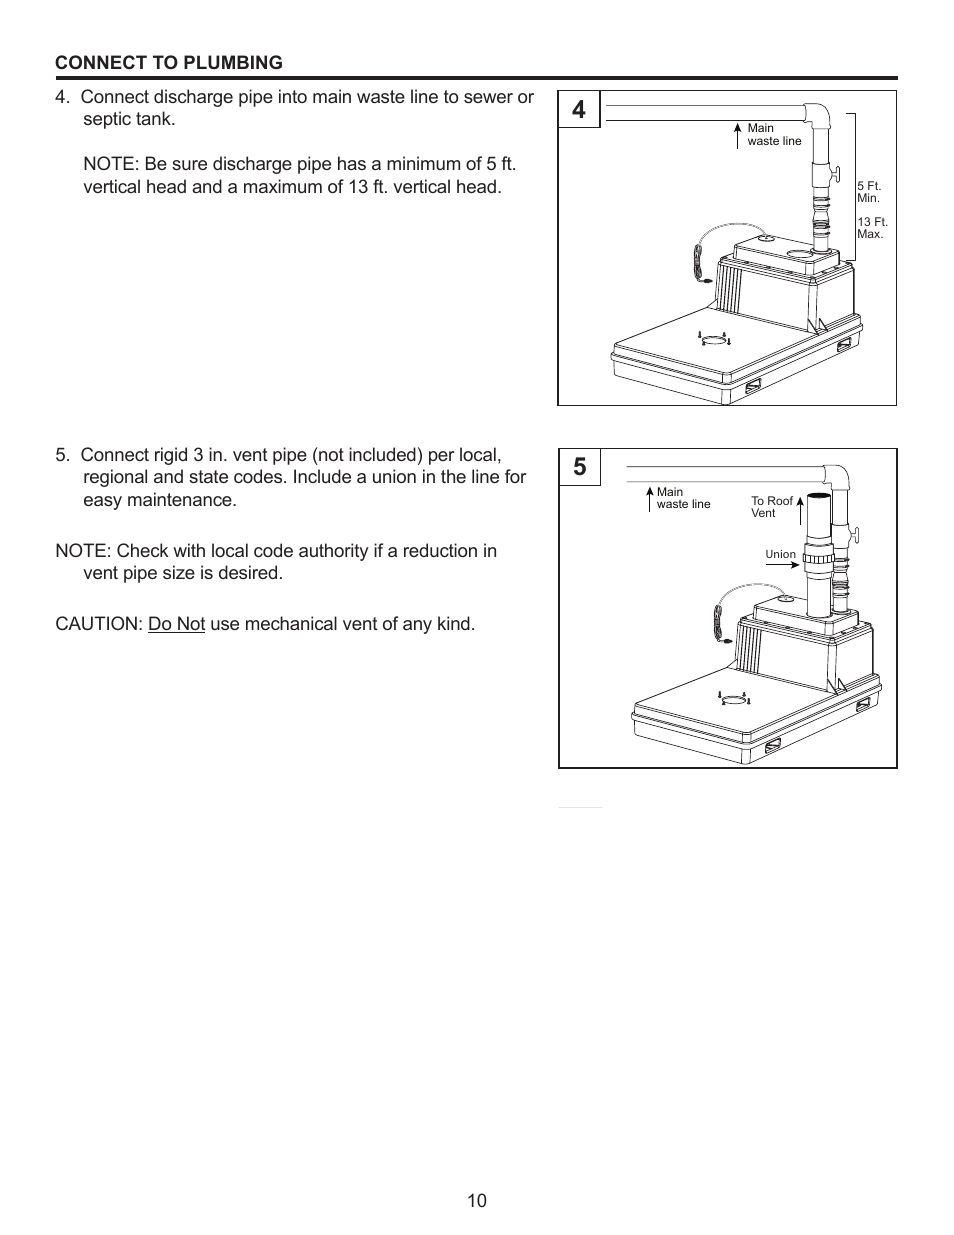 Star Water Systems S1101 User Manual | Page 10 / 38